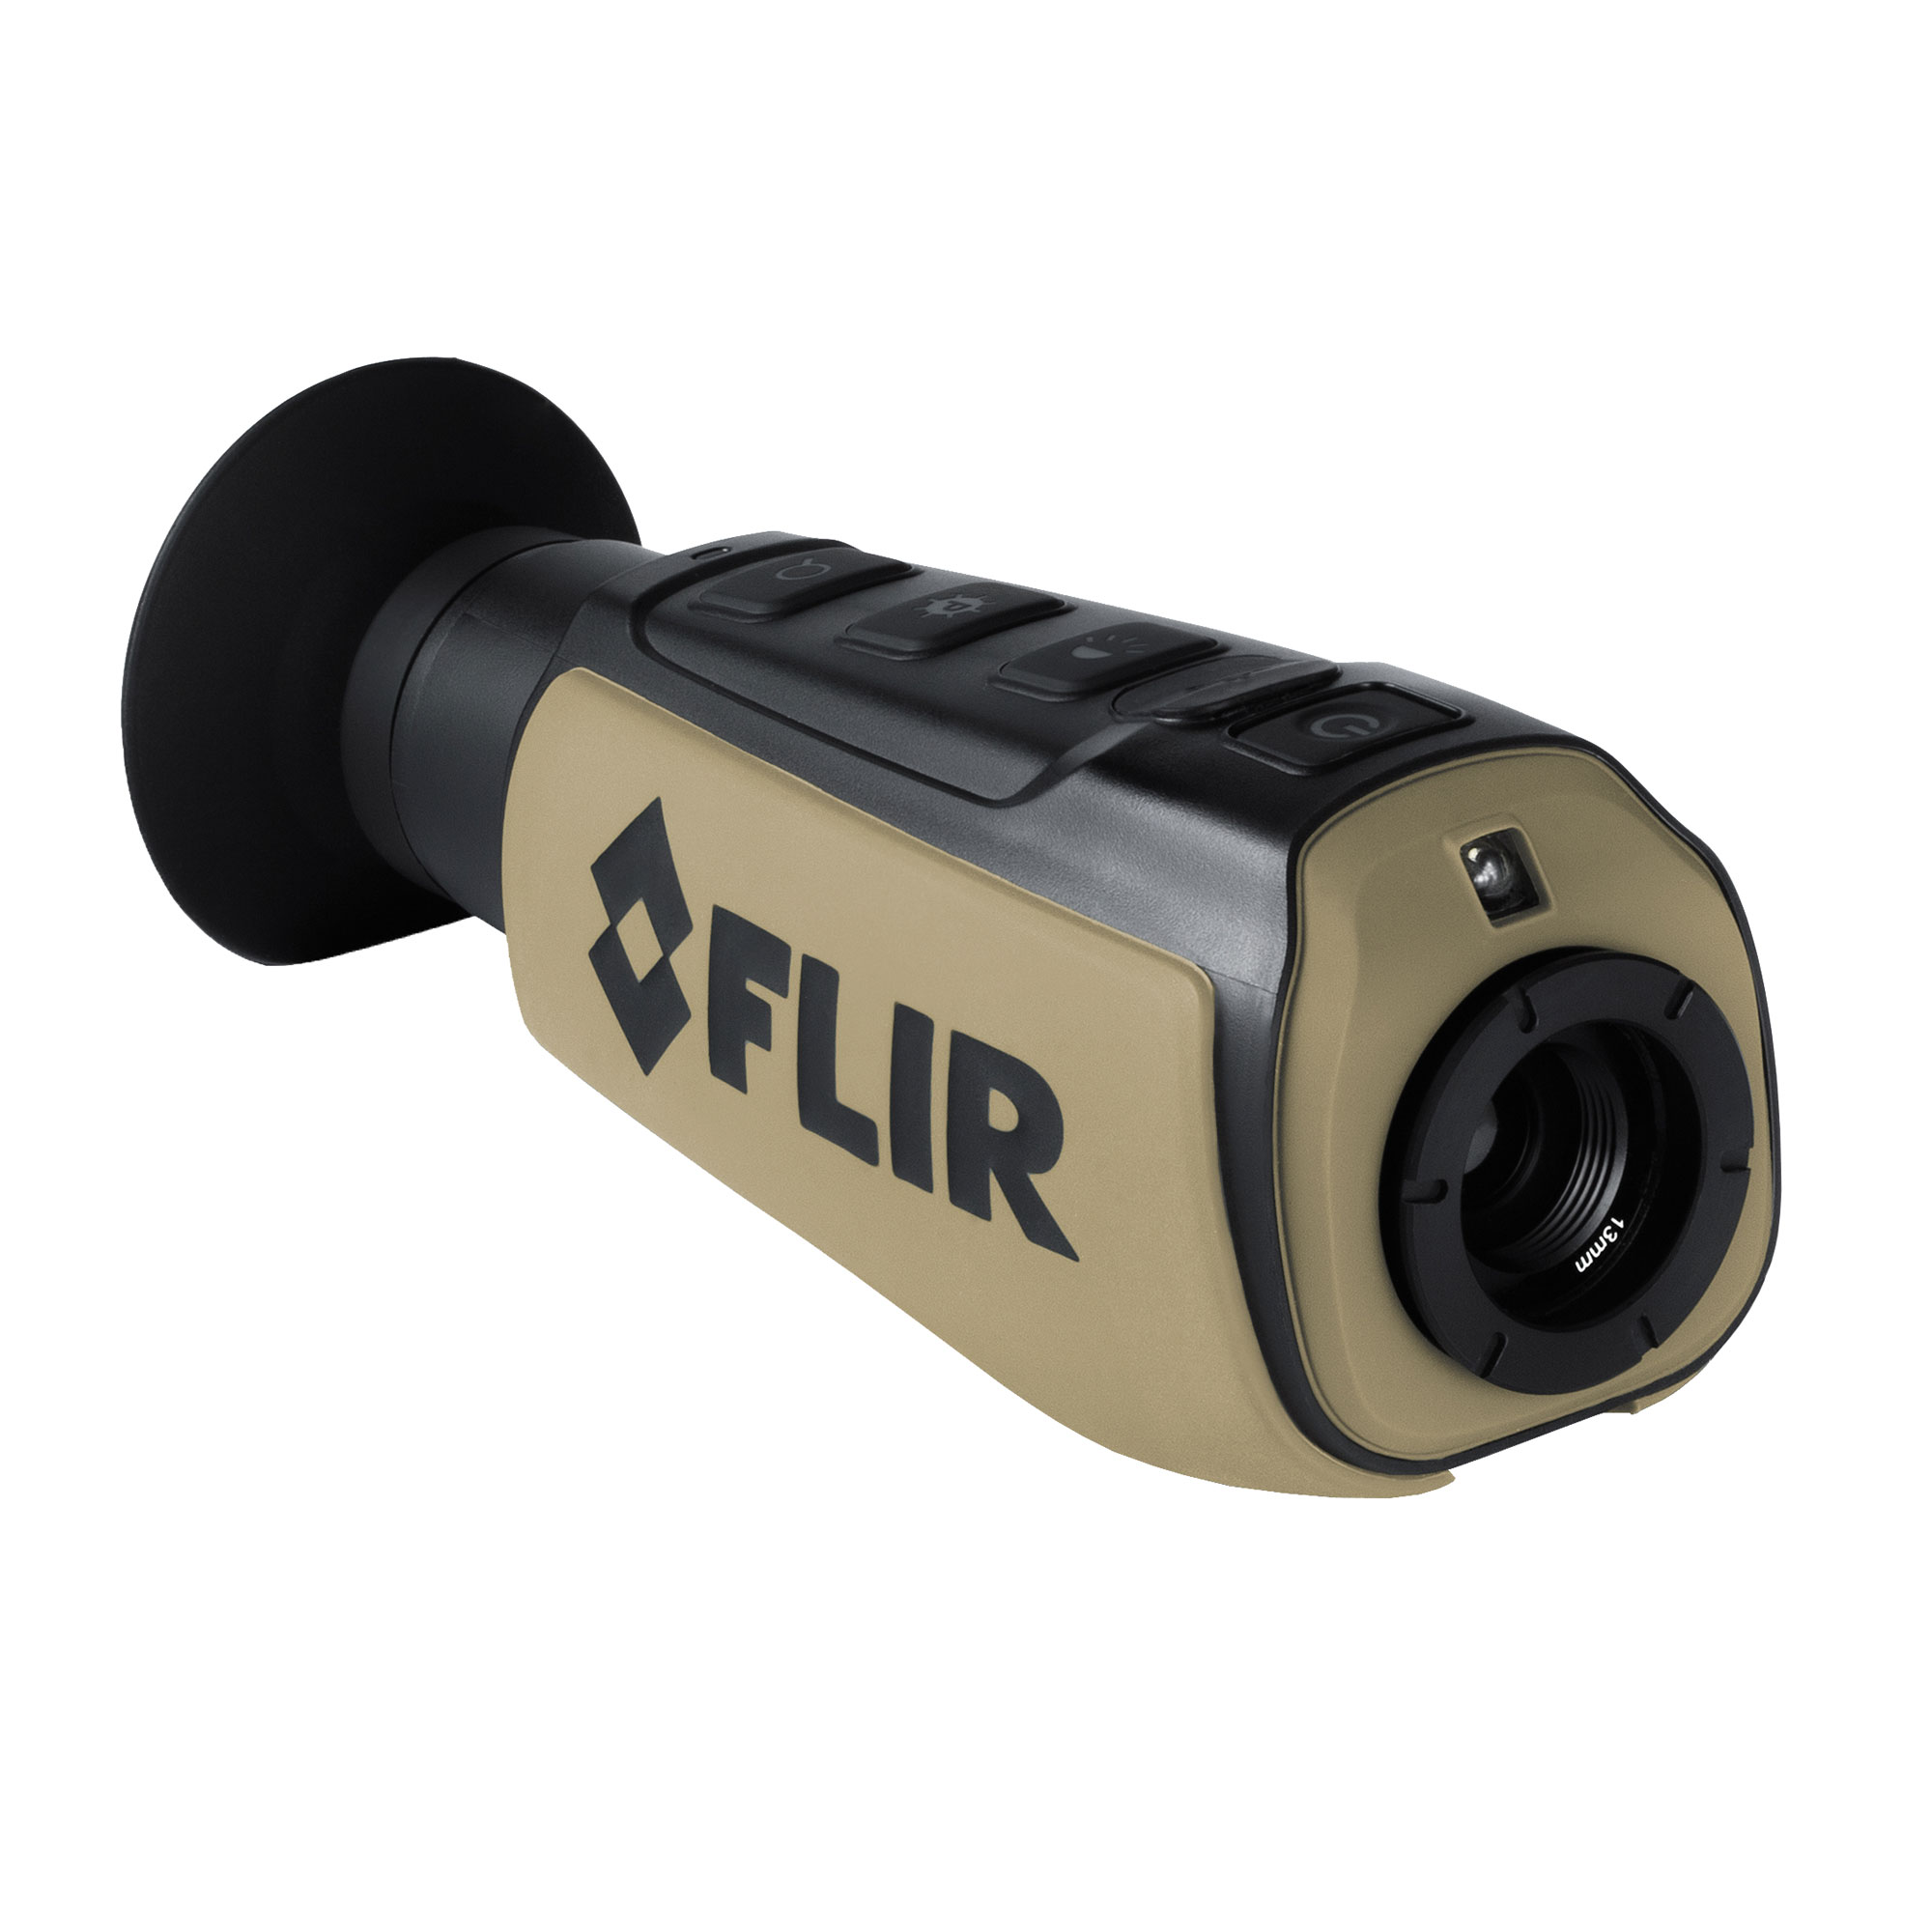 FLIR Scout III 240 30Hz Video 640 x 480 Night Vision IMaging Thermal Monocular by FLIR